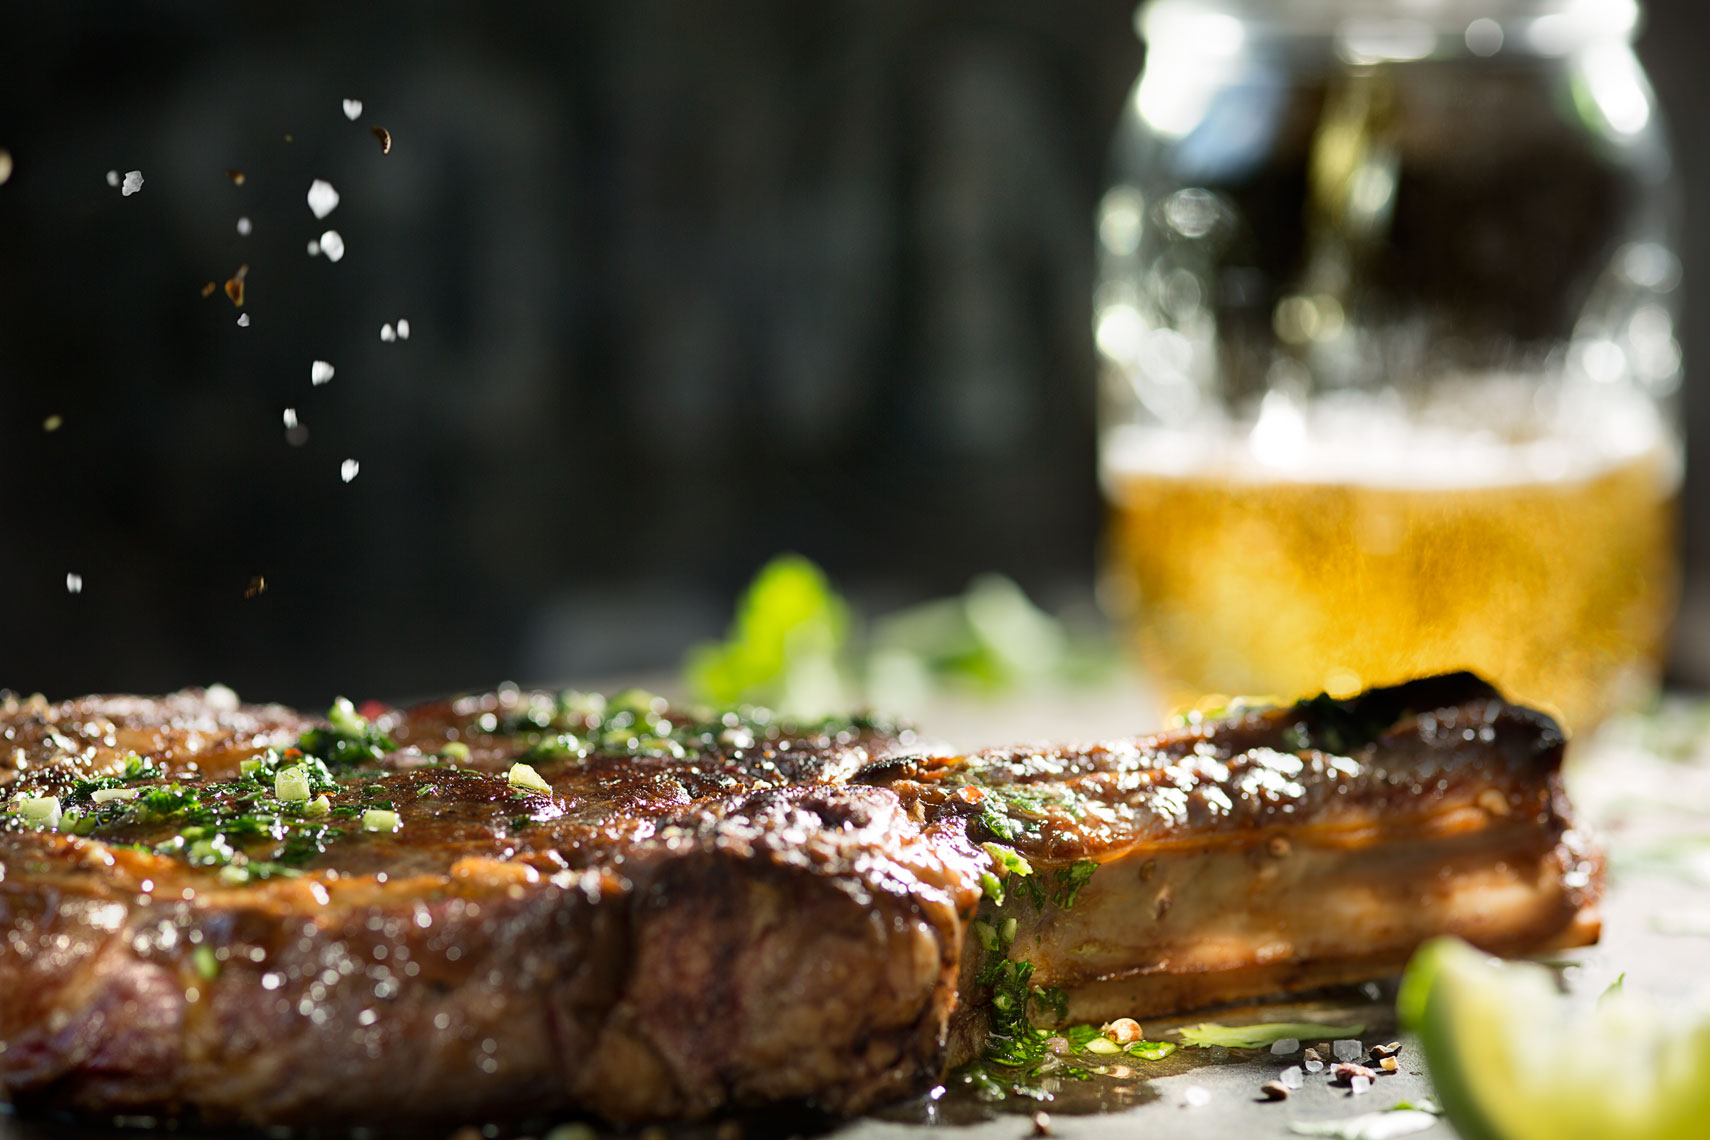 Steak and Beer Food Photography- © Aristo Studios